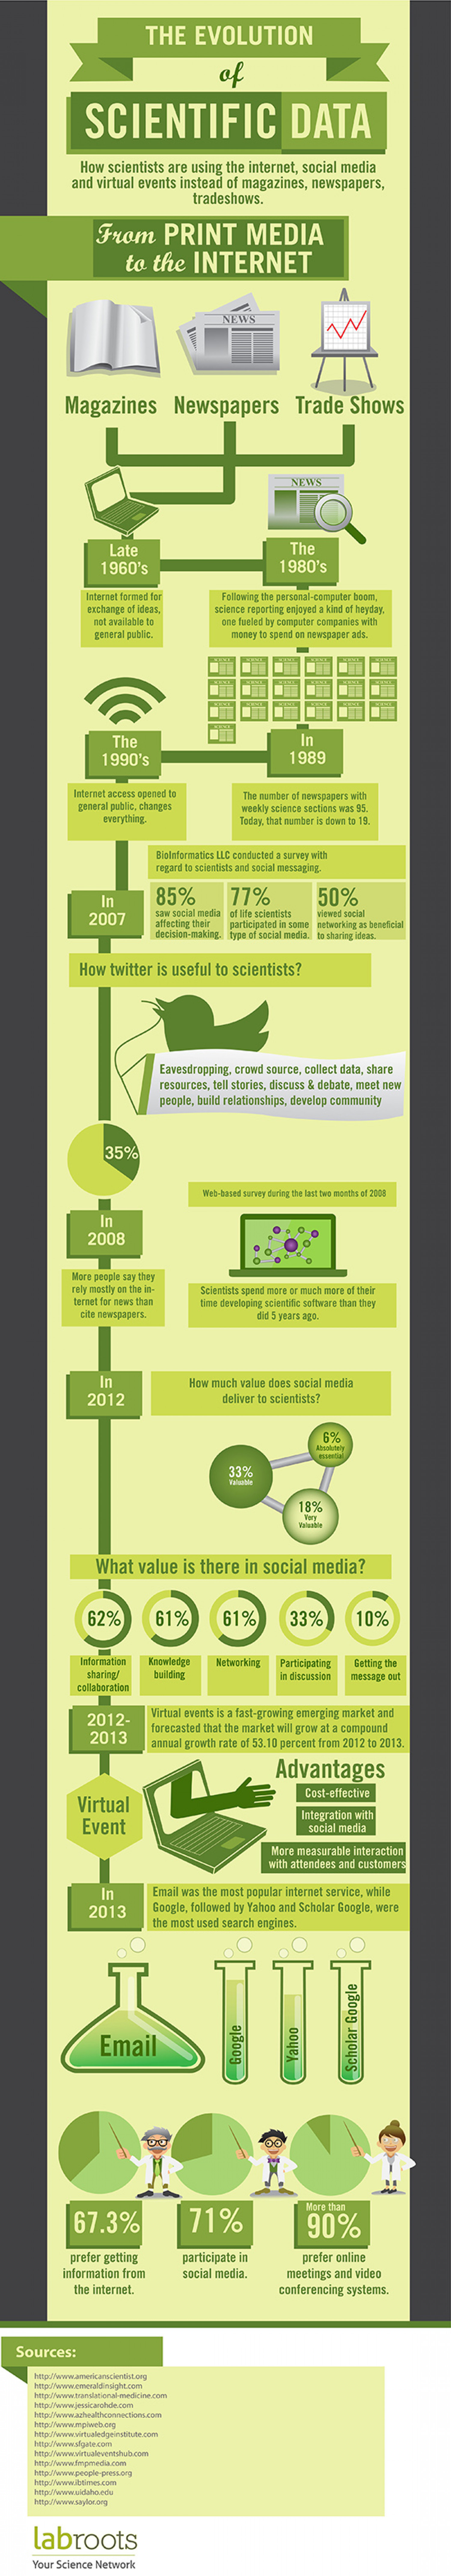 The Evolution of Scientific Data Infographic